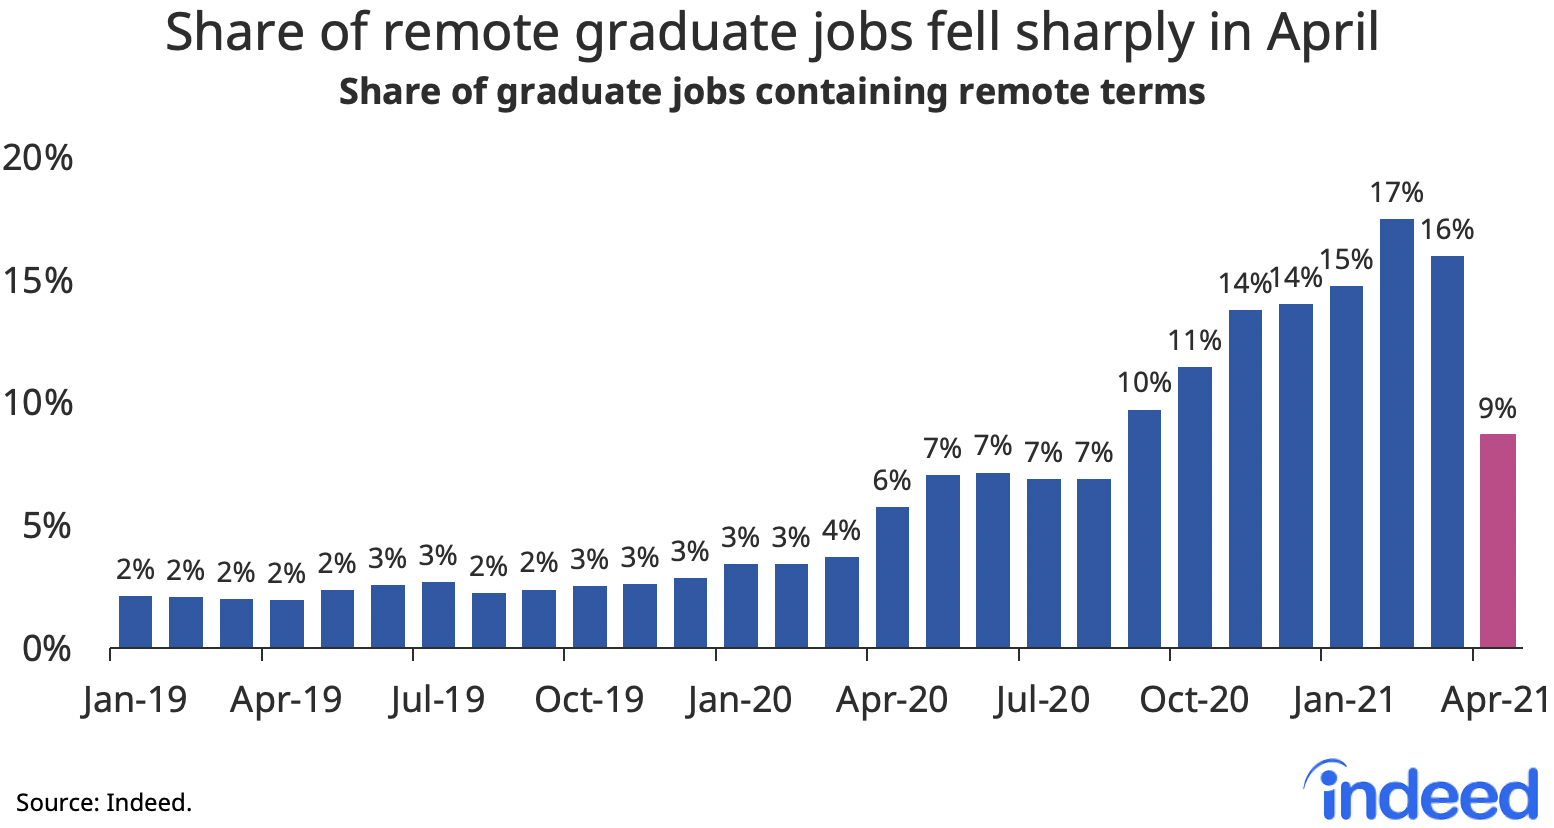 Bar graph showing the share of remote graduate jobs fell sharply in april